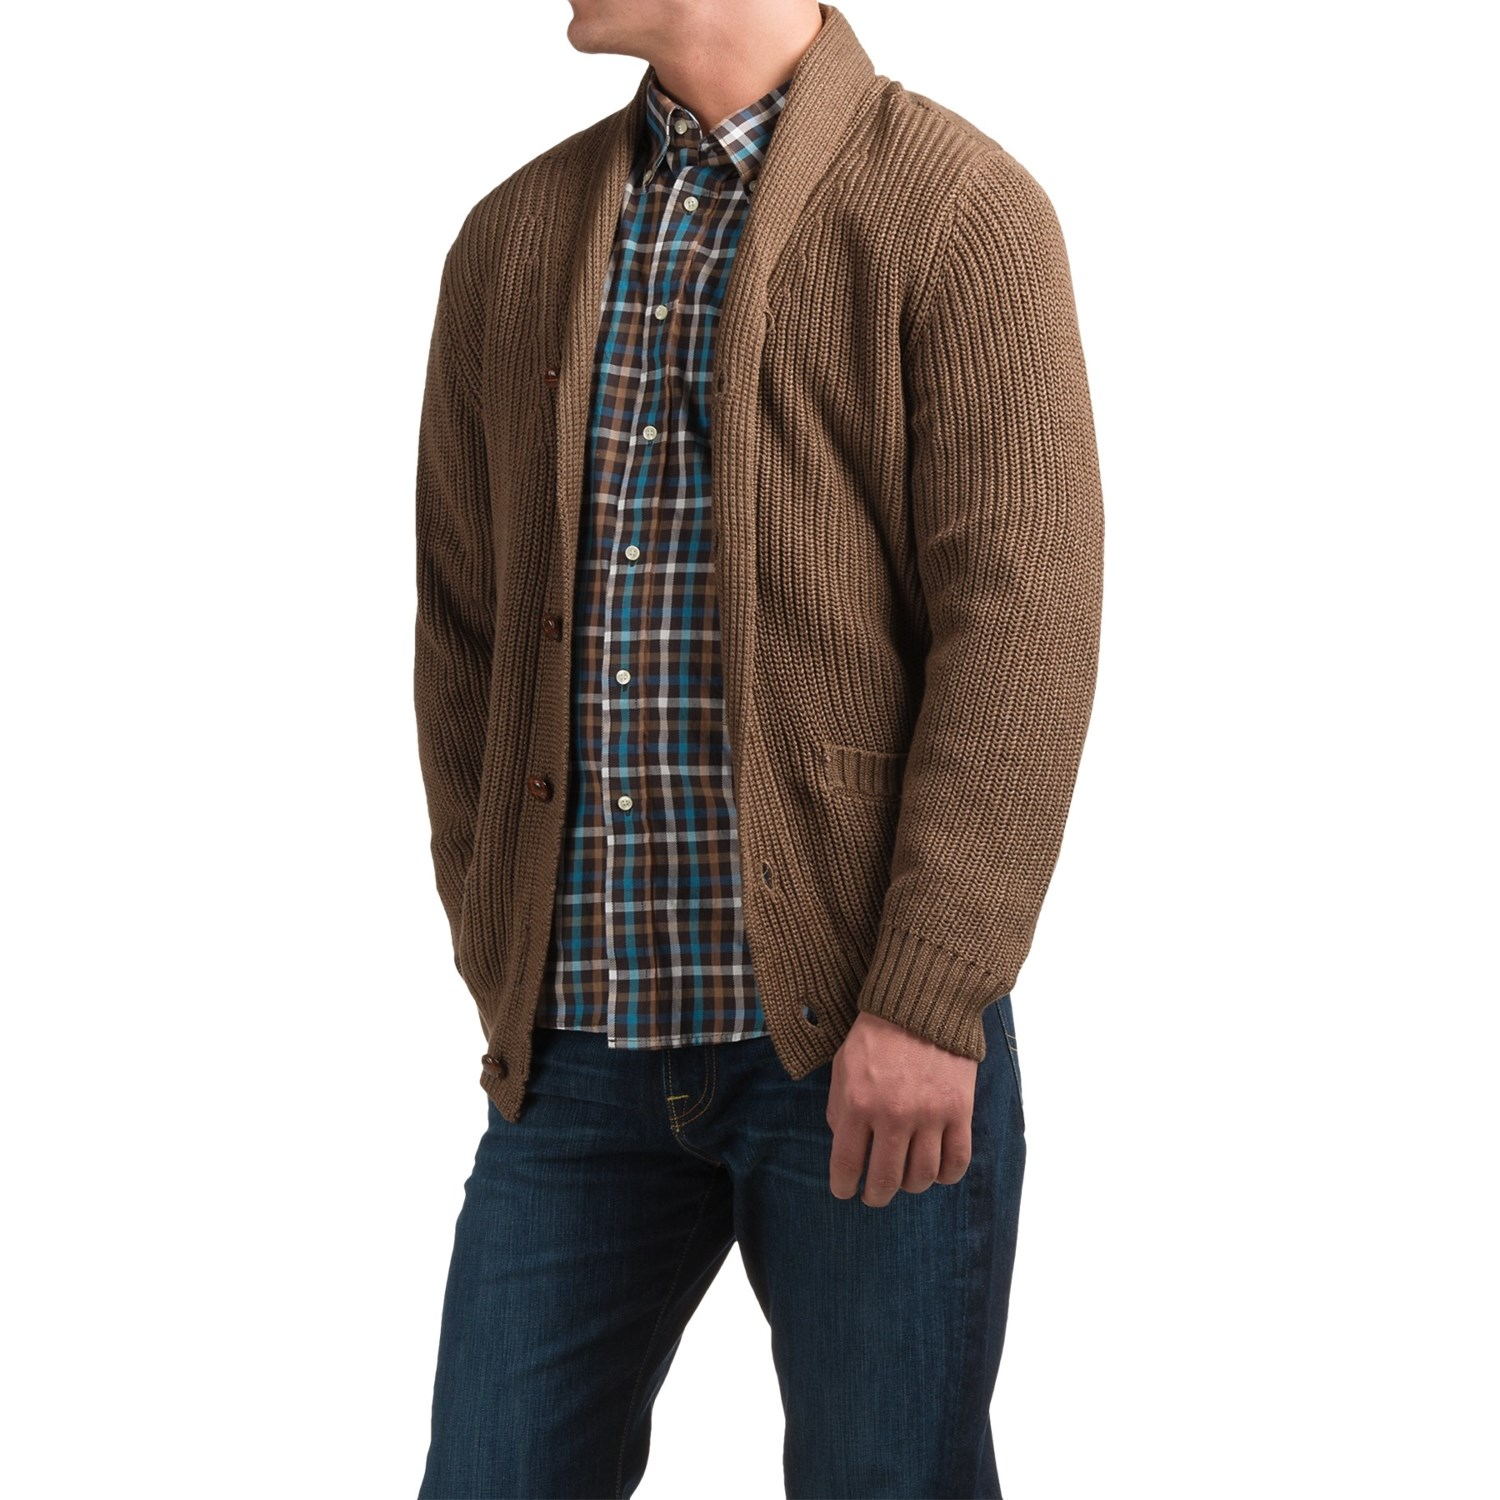 Free shipping on shawl collar sweaters for men at private-dev.tk Shop cashmere, wool & cotton sweaters in regular & trim fits. Totally free shipping & returns.